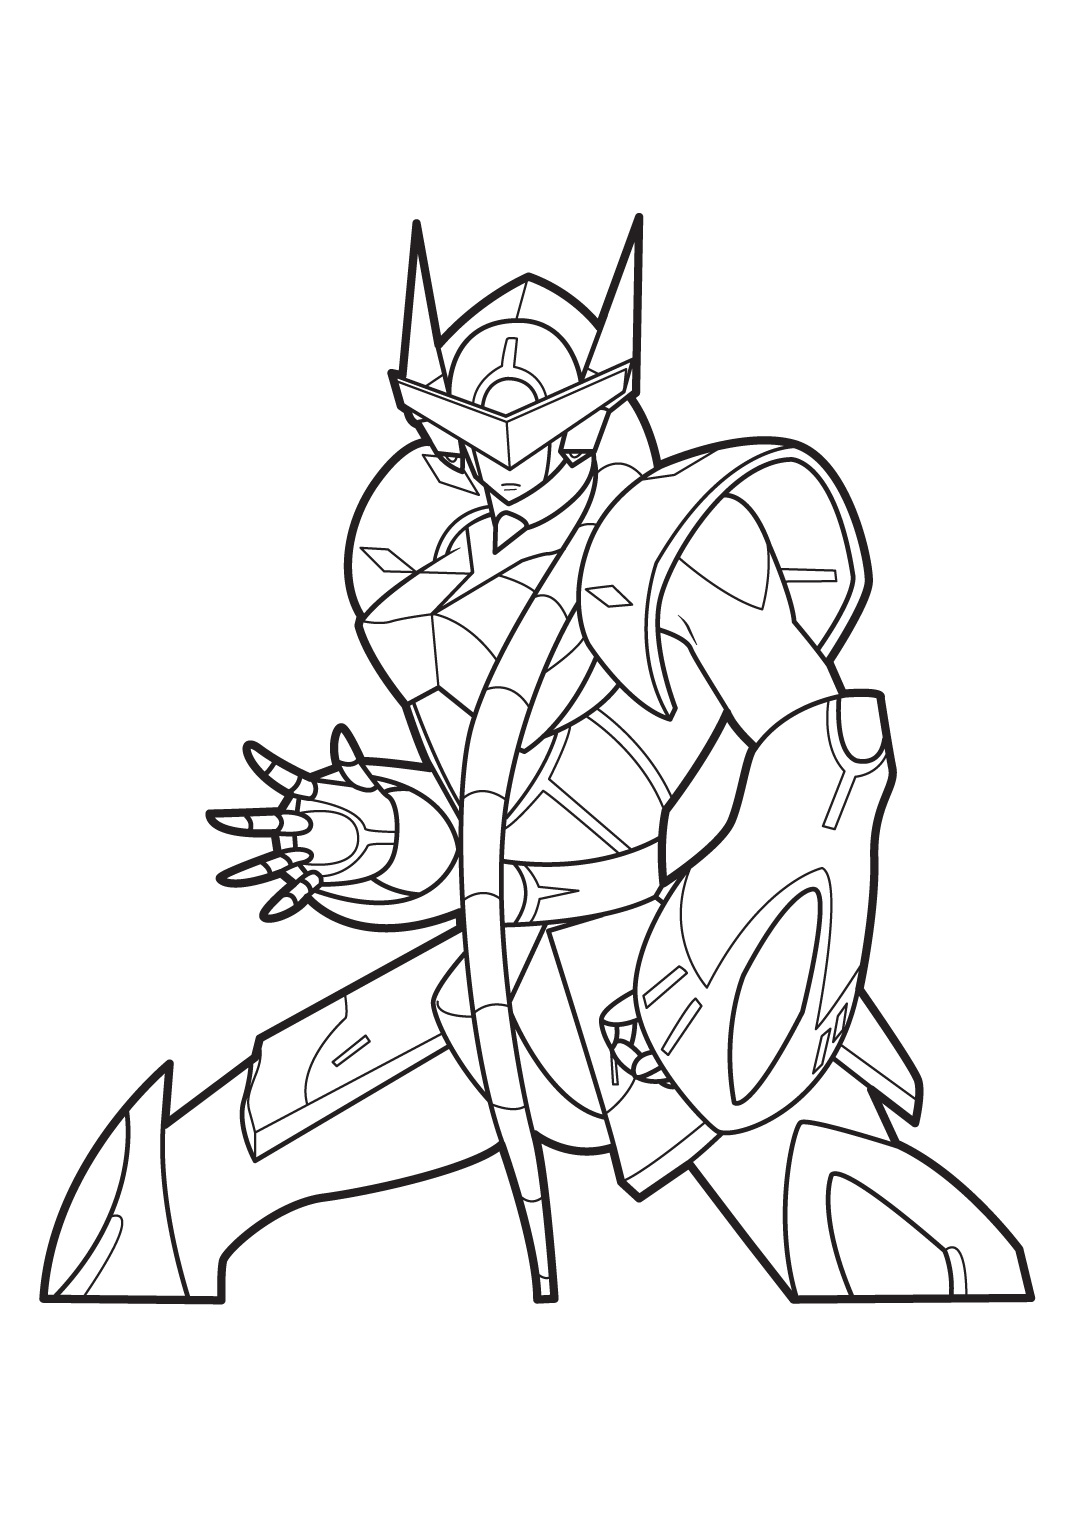 Bakugan coloring pages25 coloring kids for Bakugan coloring book pages